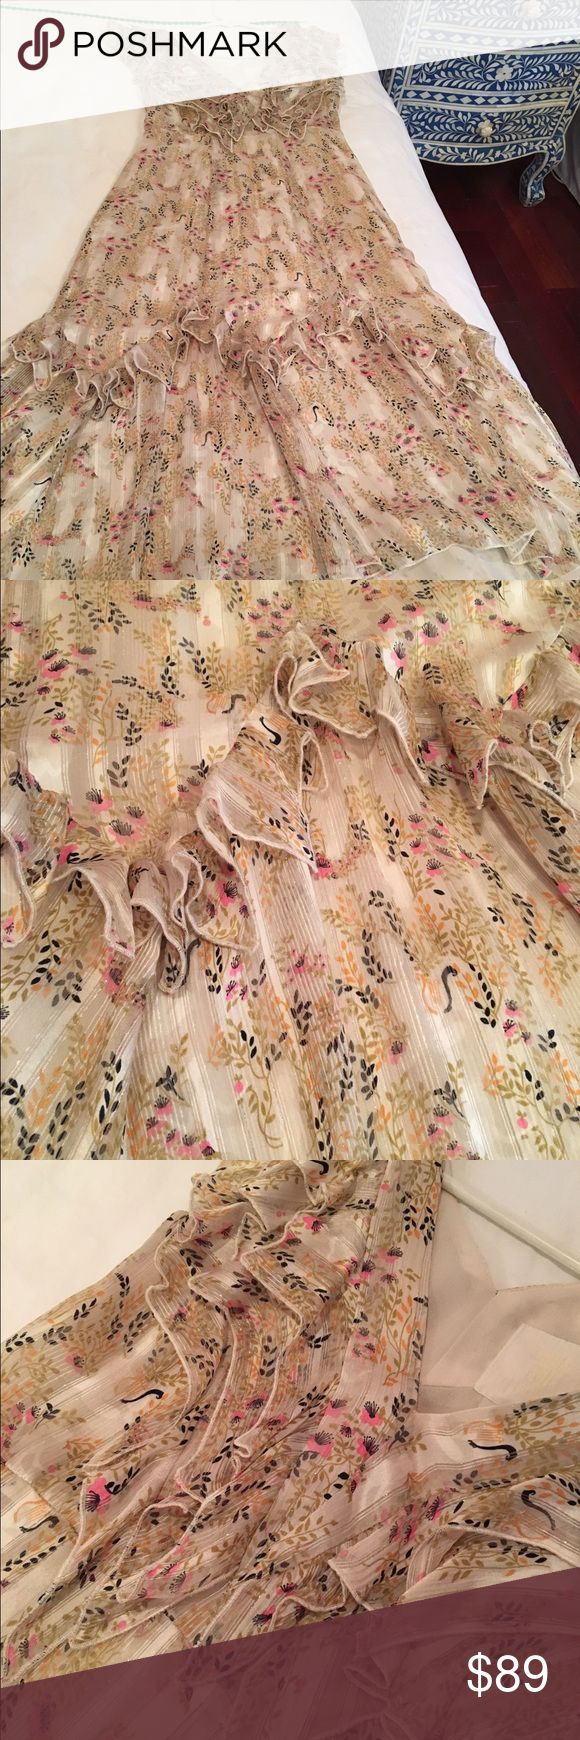 Anthropologie Anna Sui dress Beautiful silk print Anna Sui for Anthropologie dress is size 00. The most feminine dress ever! Anna Sui Dresses Midi